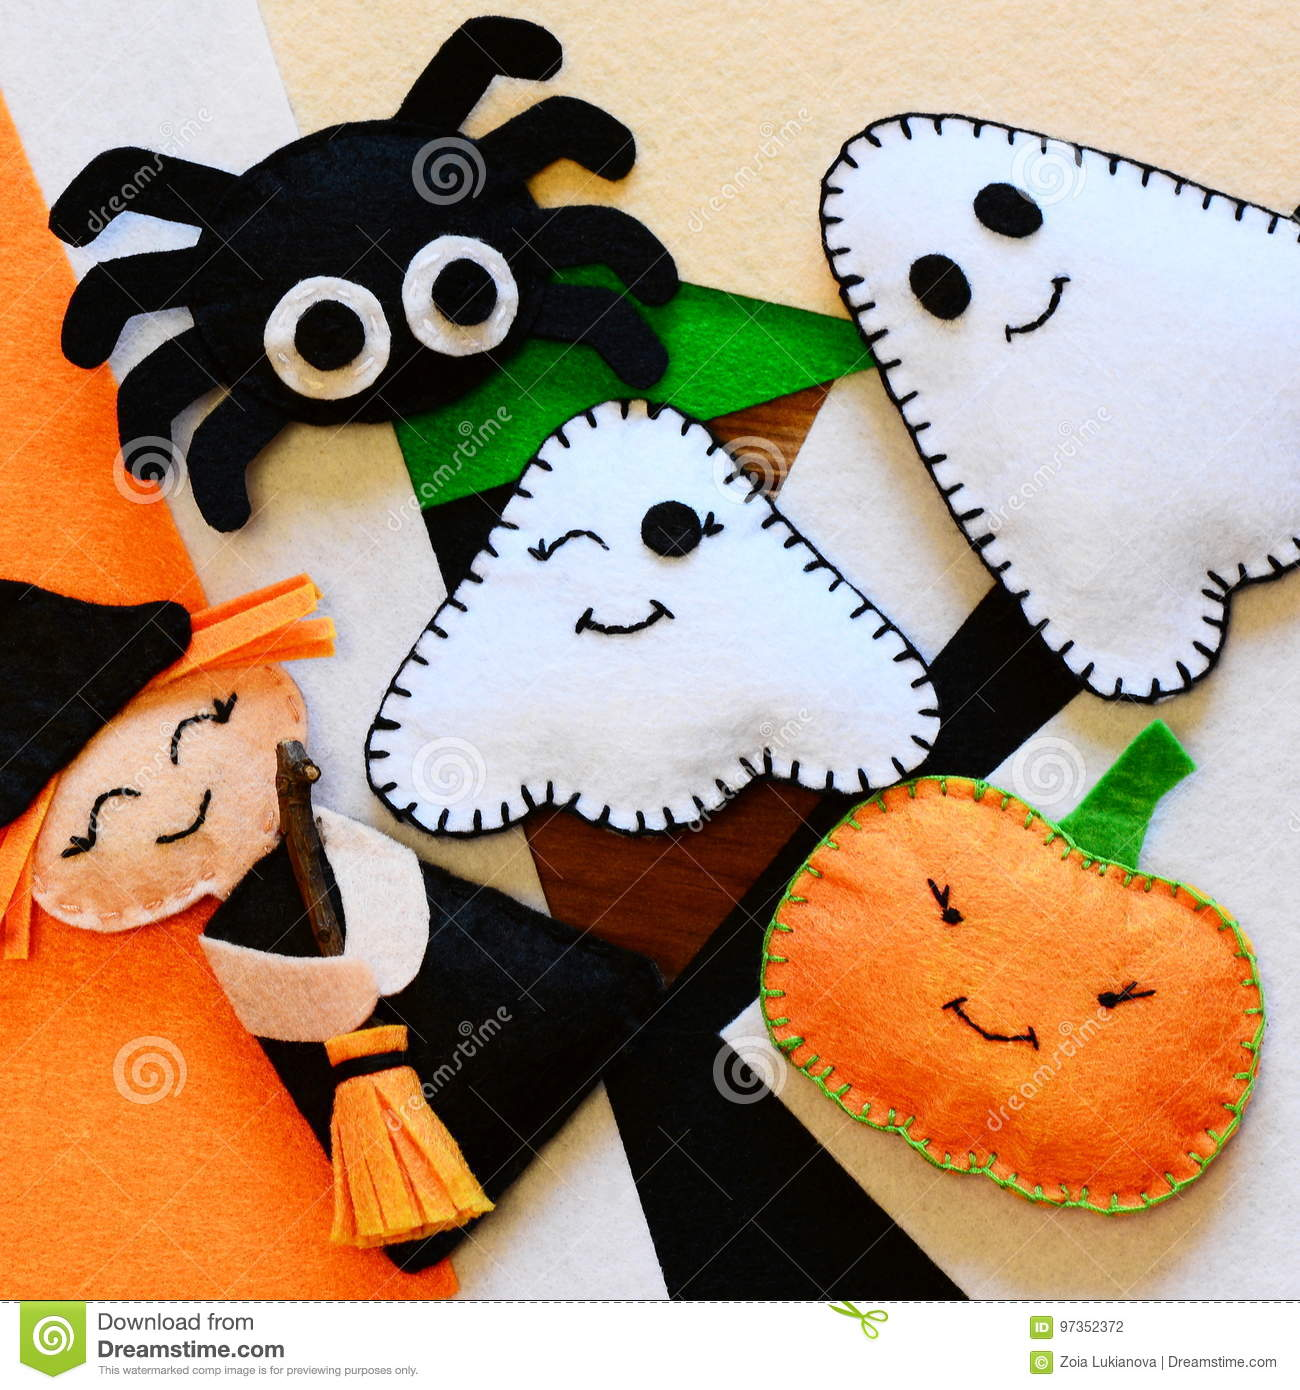 Halloween Home Decor Toys Felt Witch With Broom Pumpkin Head Two